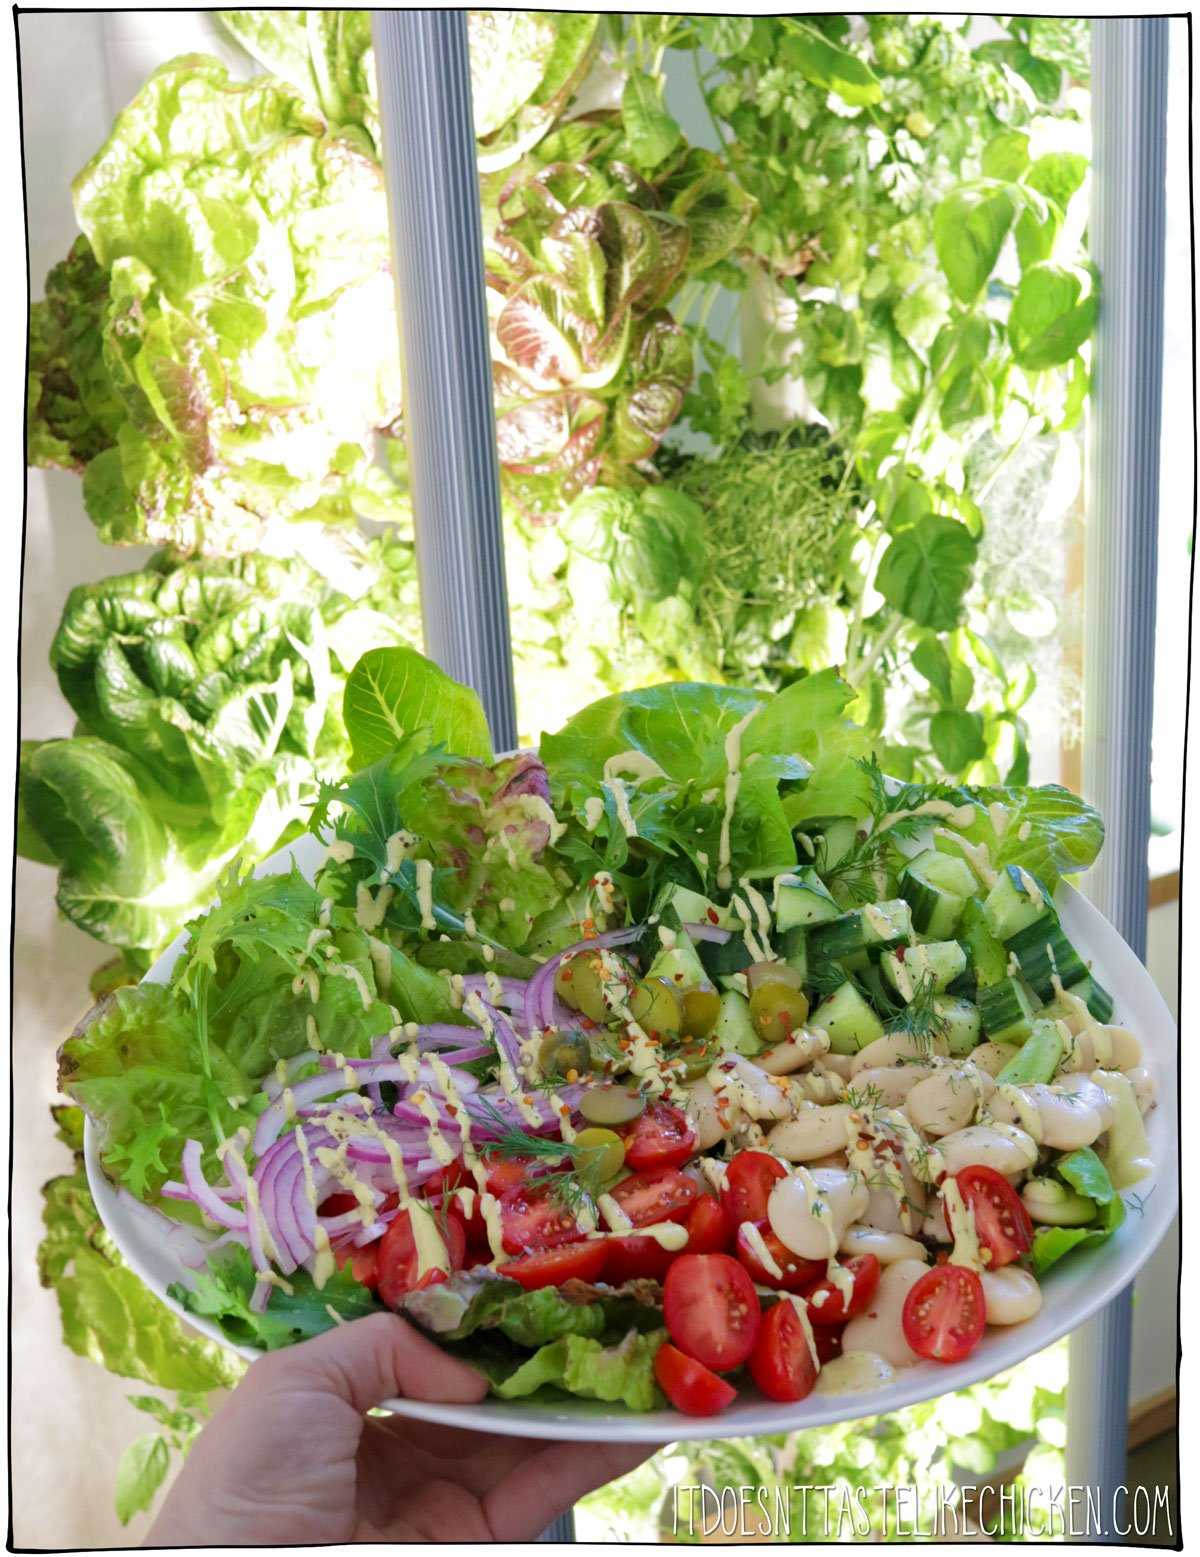 Creamy Vegan Dill Pickle Salad and Garydn Review! This salad is made using lettuce and herbs from my Gardyn at home garden tower- how cool! Hearty beans, crunchy cucumber, sweet pops of grape tomatoes, and red onions, on a bed of fresh homegrown crisp mixed greens, drizzled with my creamy dairy-free dill pickle salad dressing. Yum! #itdoesnttastelikechicken #veganrecipes #gardyn